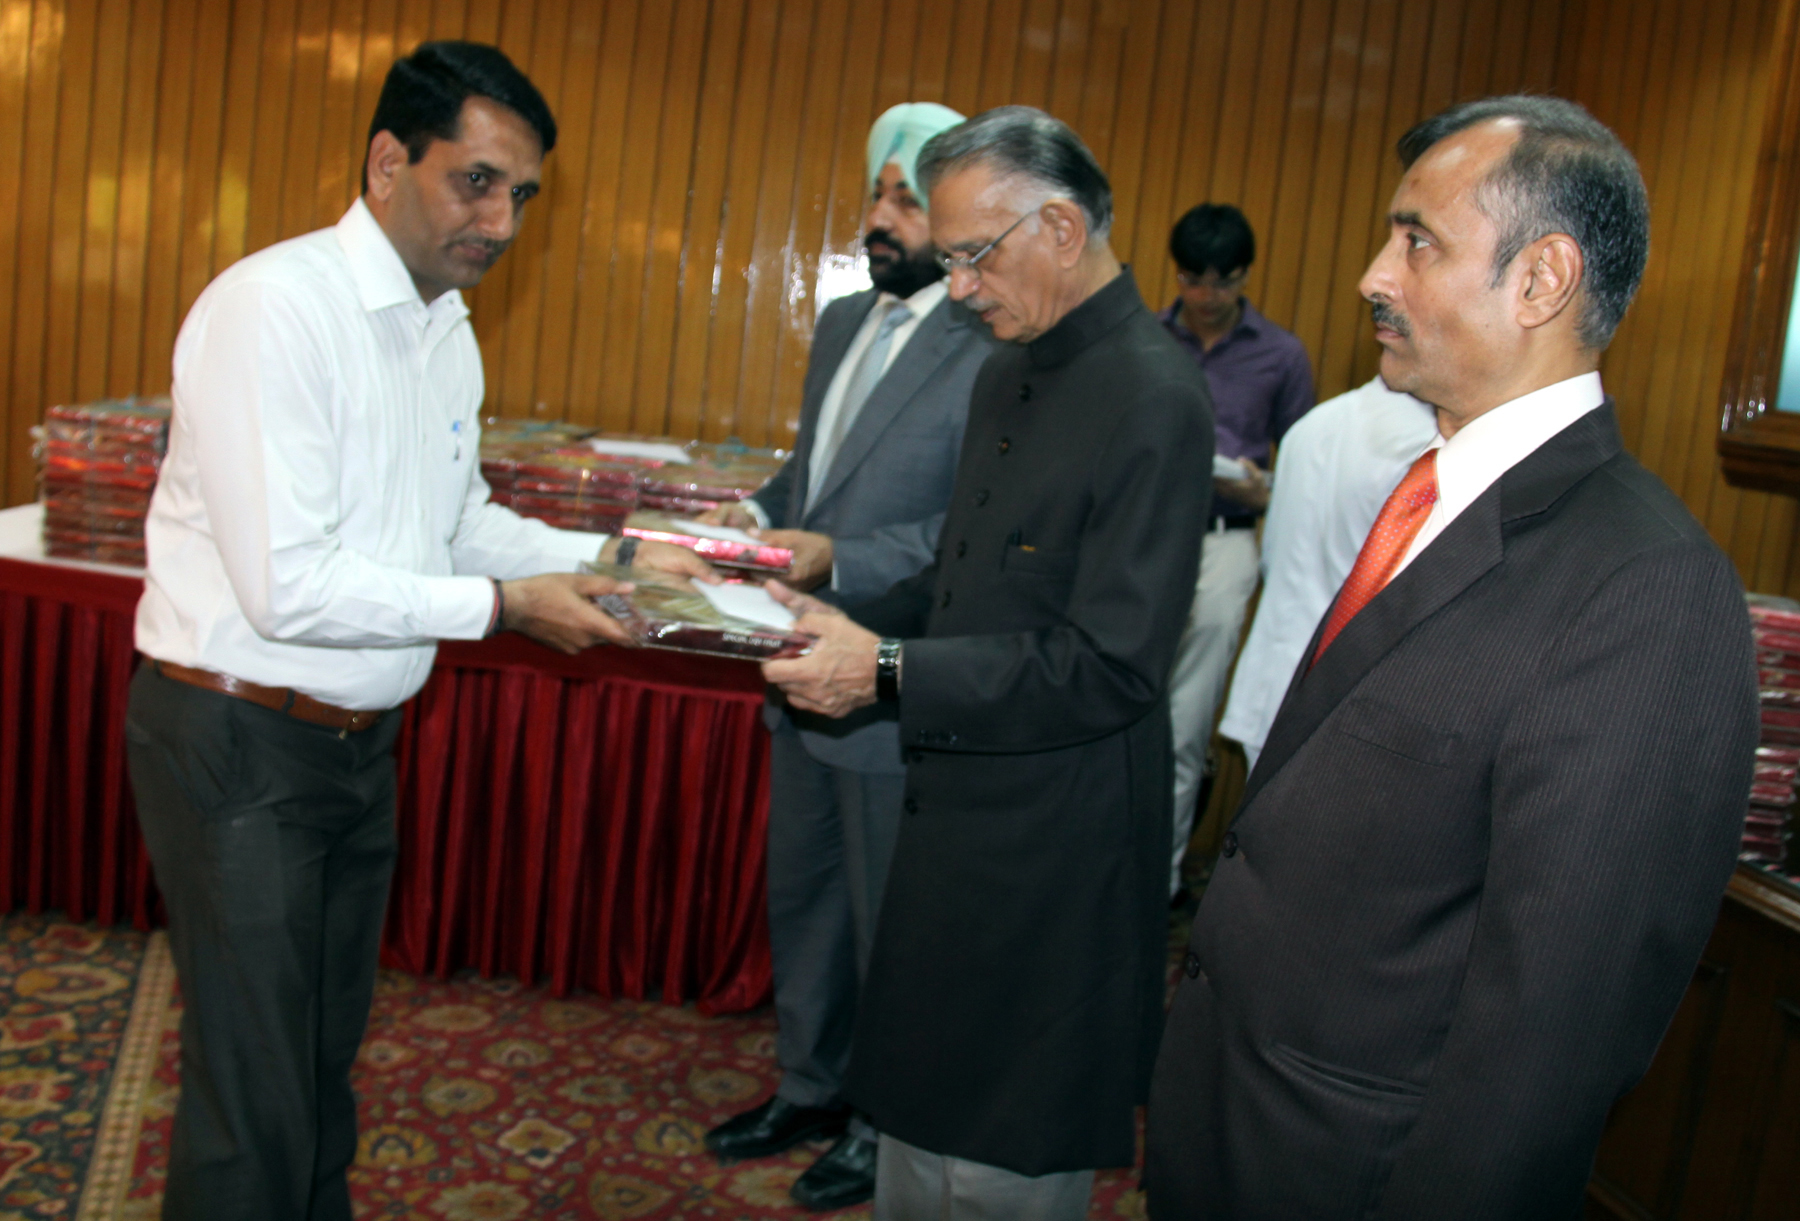 The Punjab Governor and Administrator, U.T., Chandigarh, Mr. Shivraj V. Patil distributing sweets to staff on the occasion of Diwali at  Punjab Raj Bhavan on 22.10.2014.